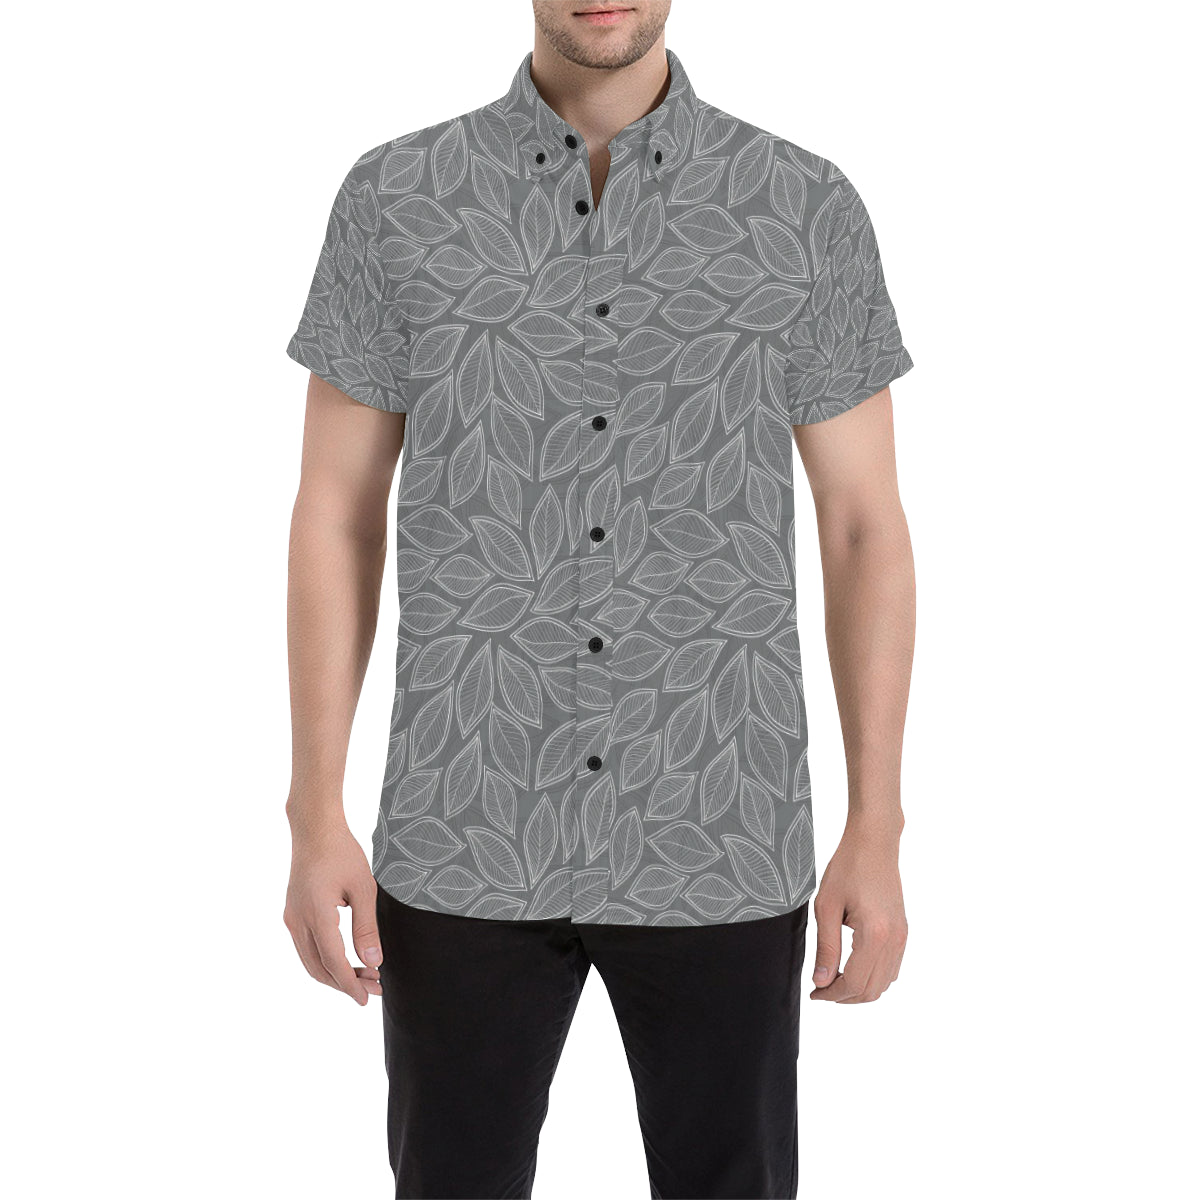 Elm Leave Grey Print Pattern Men Button Up Shirt